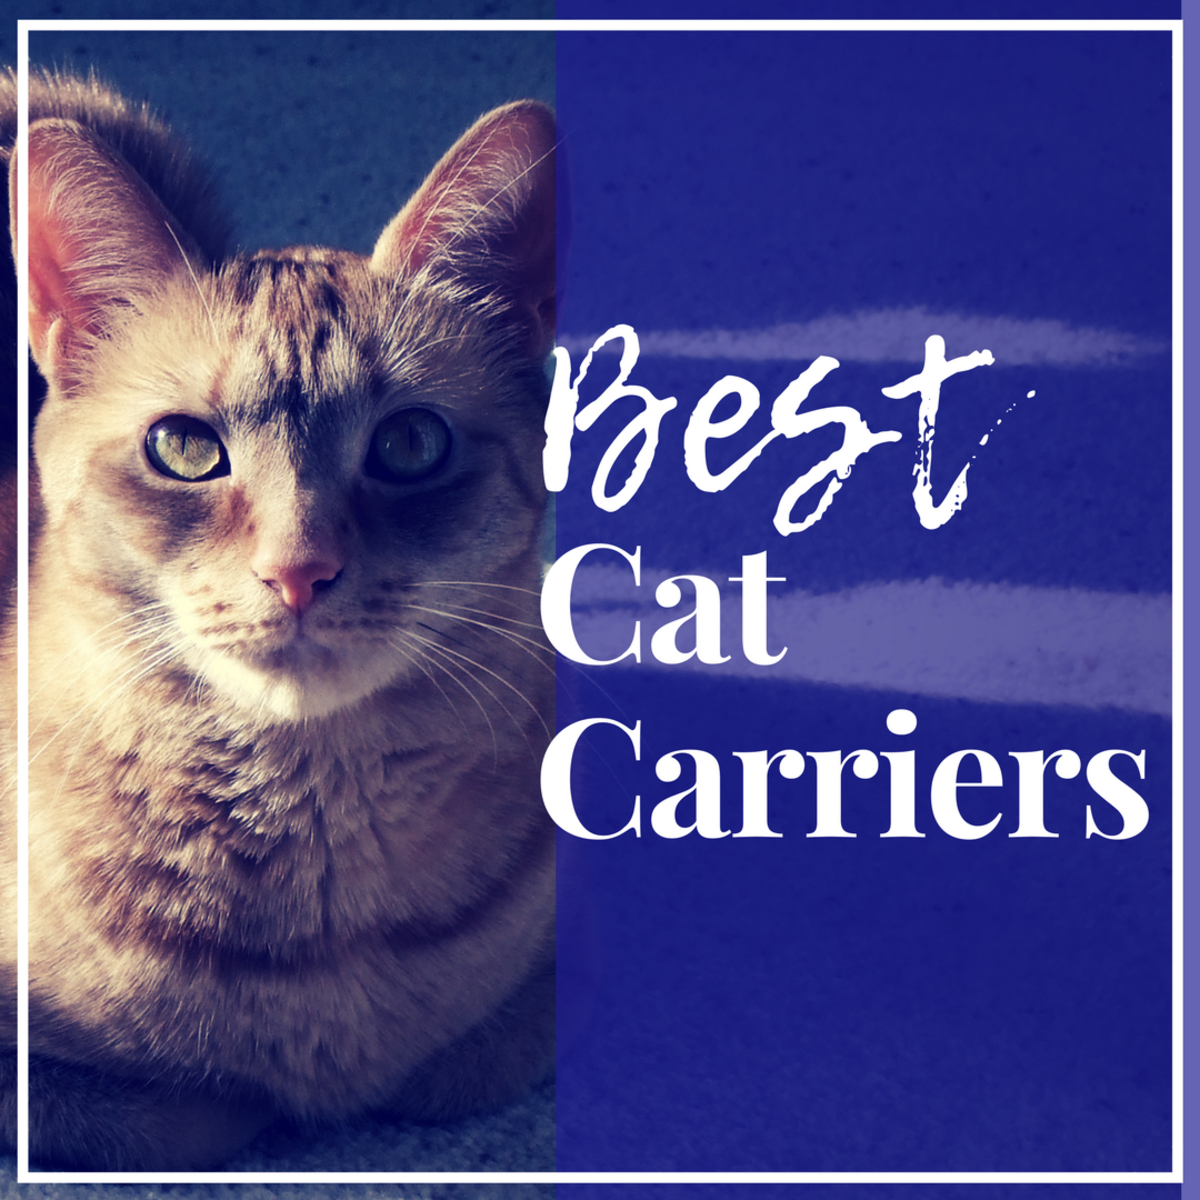 A list of the best cat carriers and advice on how to choose the right one for your cat.